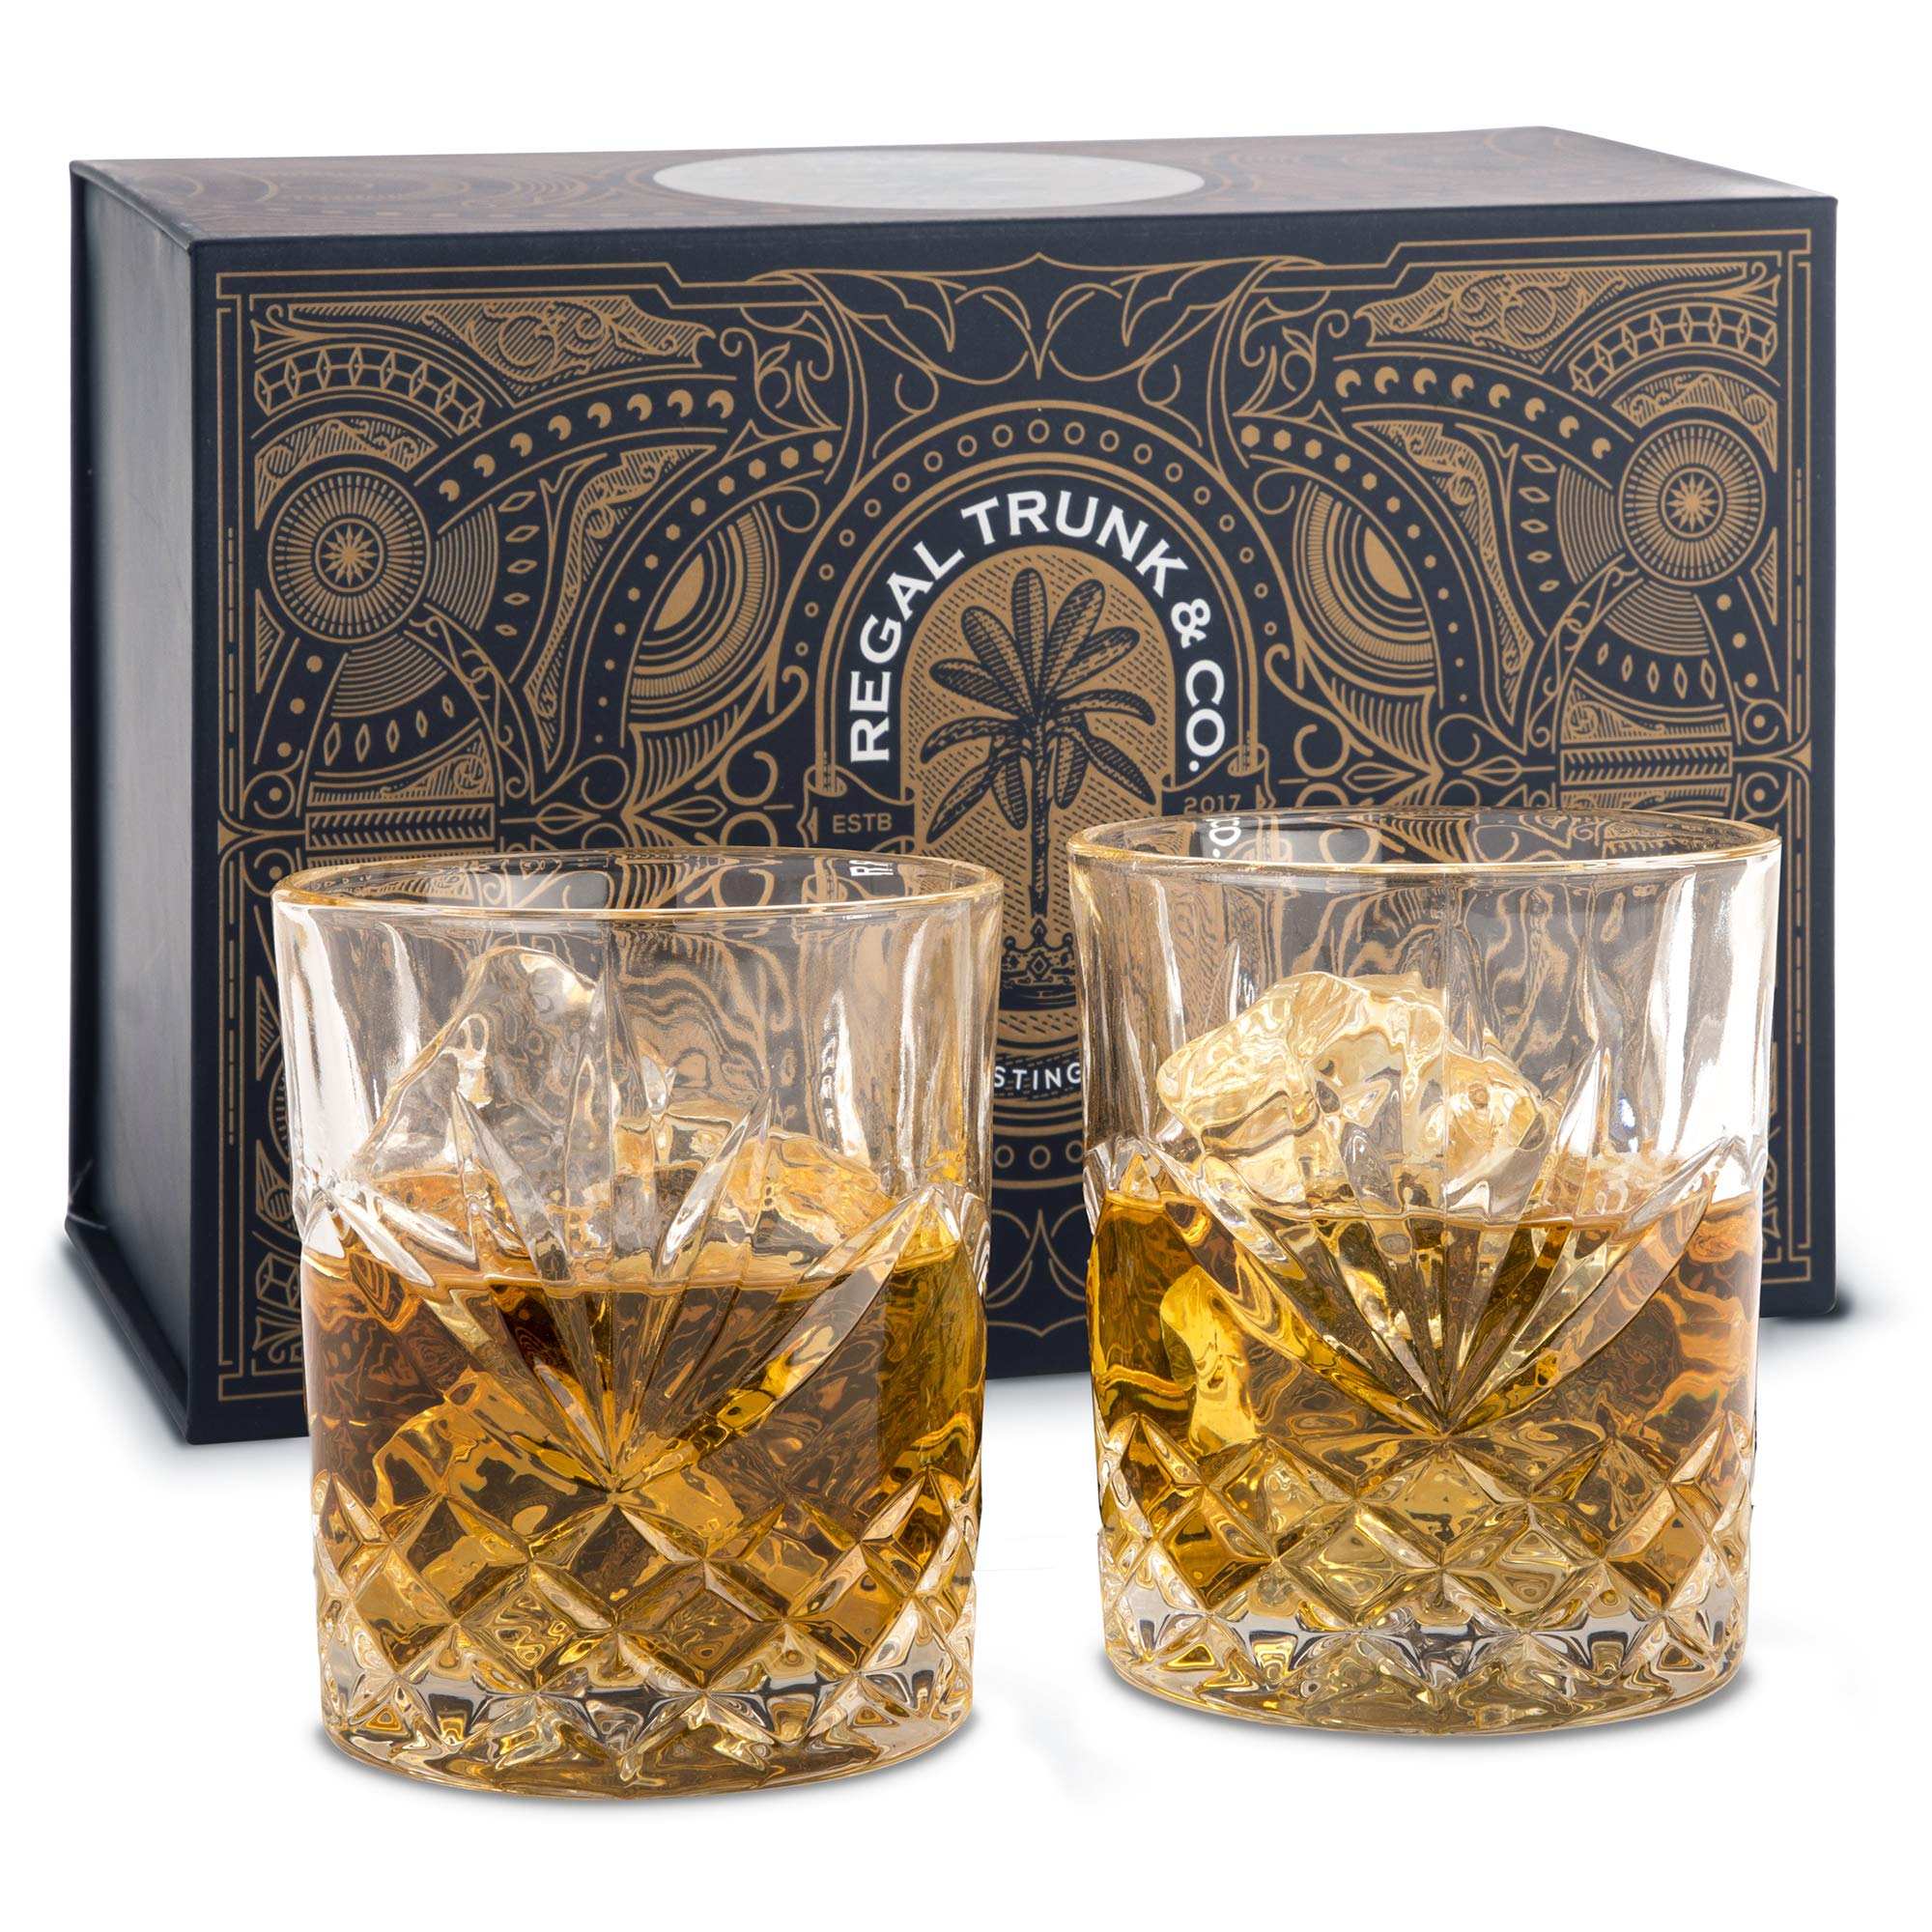 Diamond Cut Whiskey Rocks Glasses Set of 2 - Old Fashioned Lead-Free Crystal Tumblers for Whisky Bourbon Scotch or Rum - Stunning Craftsmanship, Weighted Ergonomic Design - Gift Accessories For Men